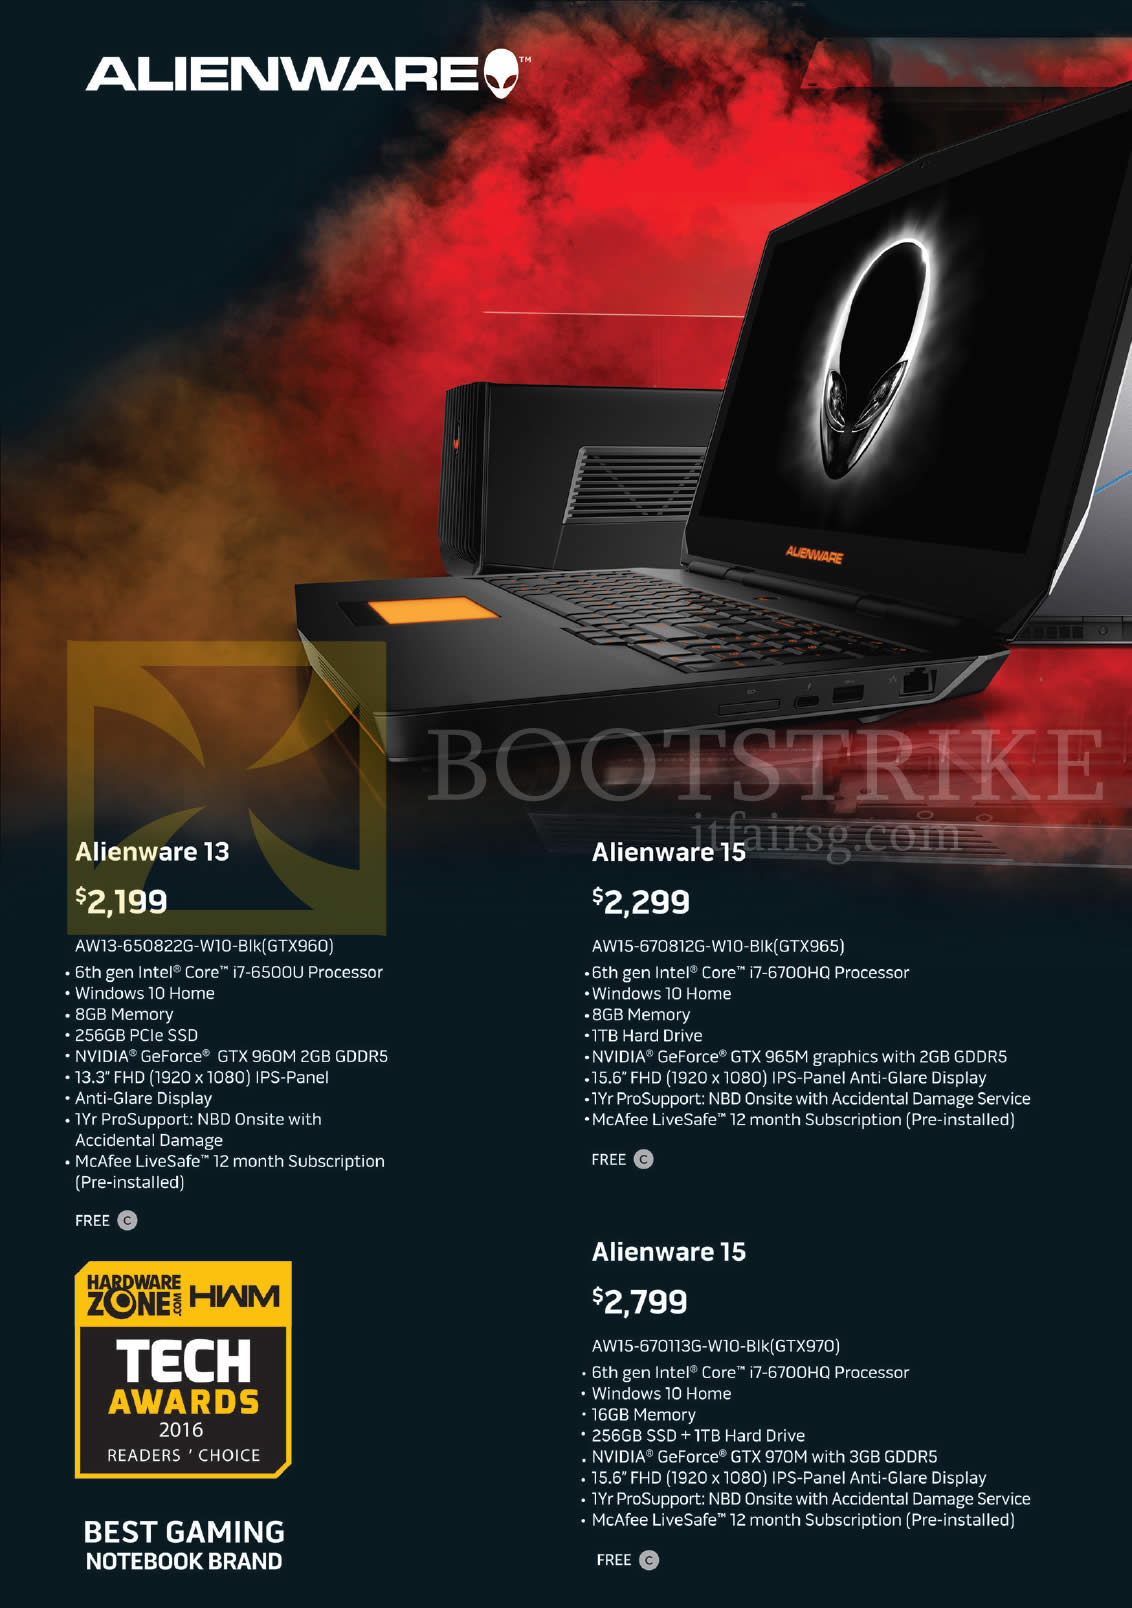 PC SHOW 2016 price list image brochure of Dell Notebooks Alienware 13 AW13 650822G W10 Blk, AW15 670812G W10 Blk, 670113G W10 Blk